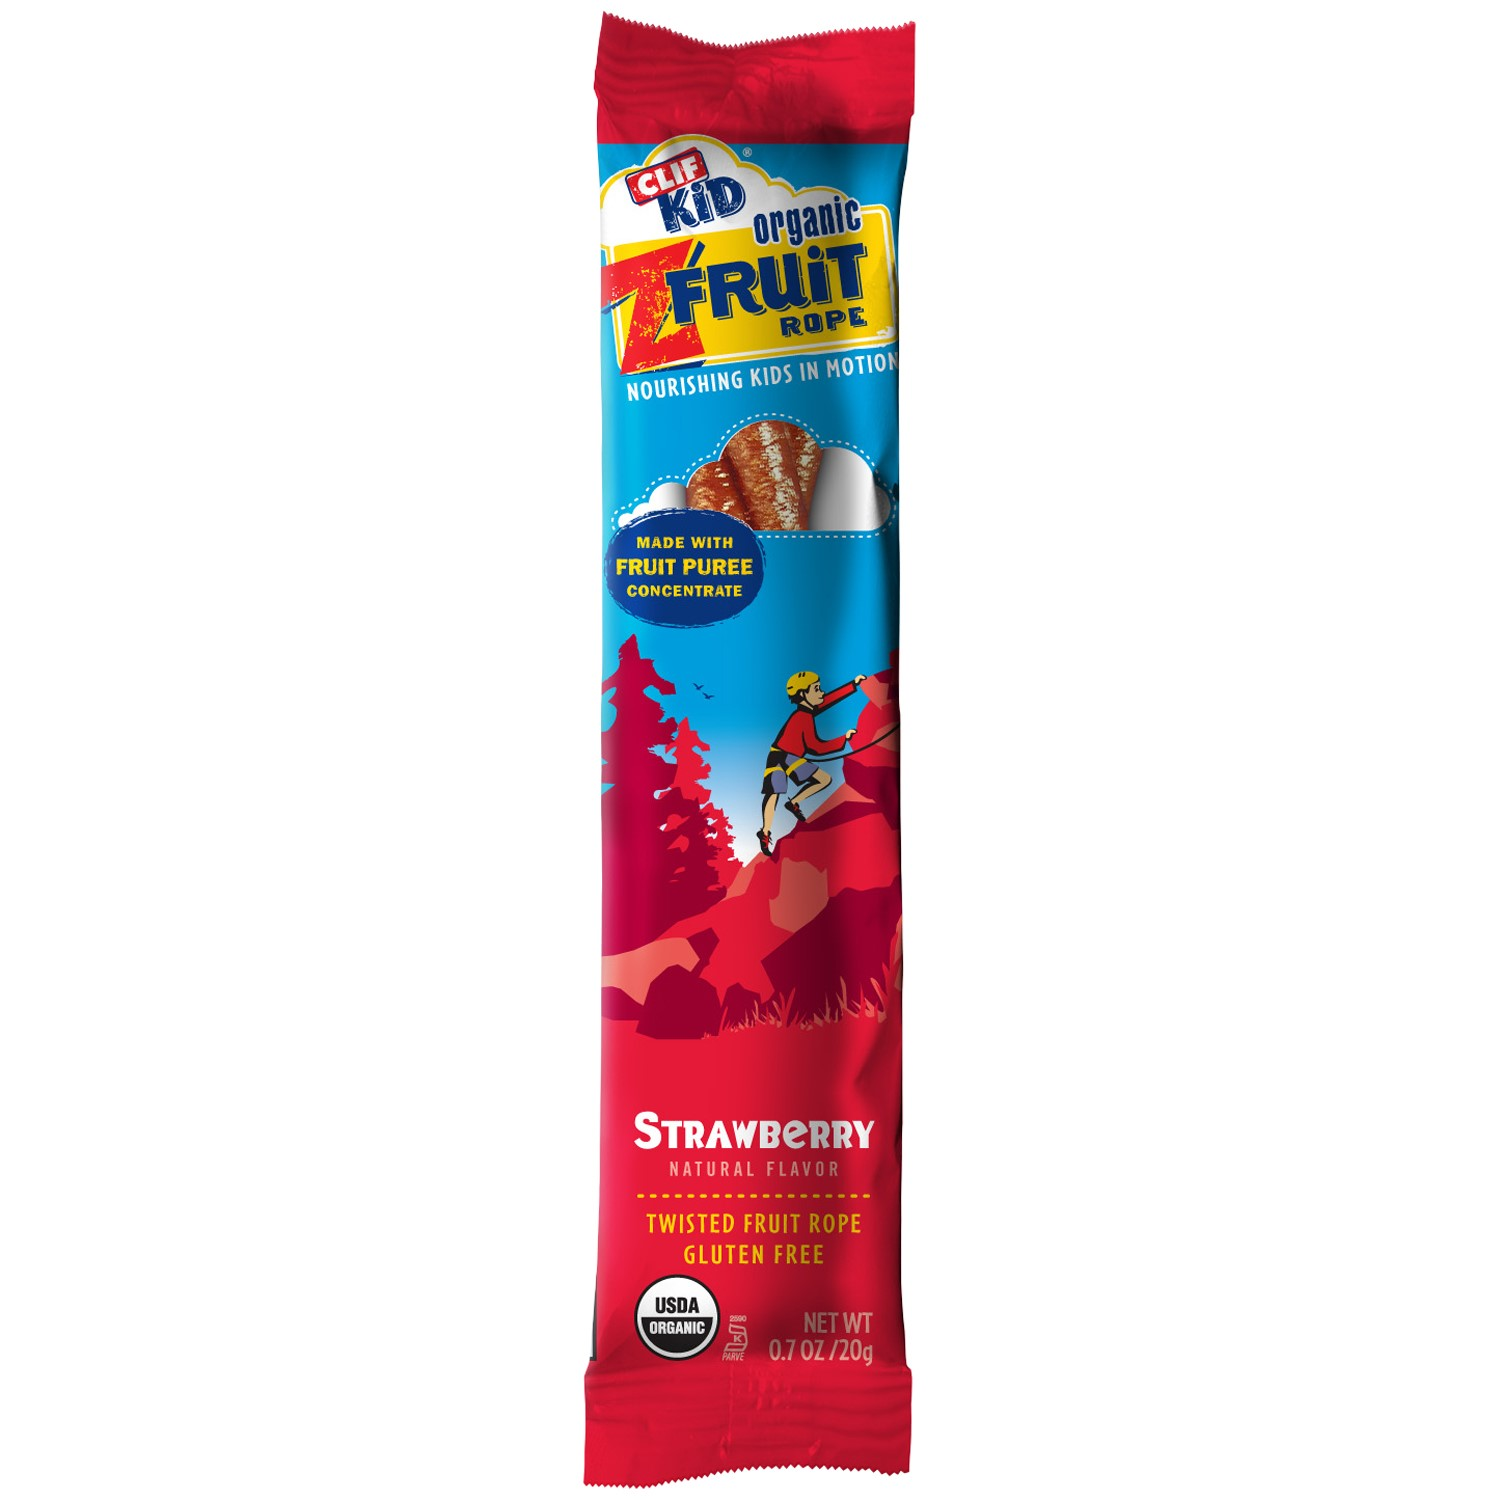 CLIF Kid Organic Z Twisted Fruit Snack, Strawberry, 0.7 Oz, 18 Ct